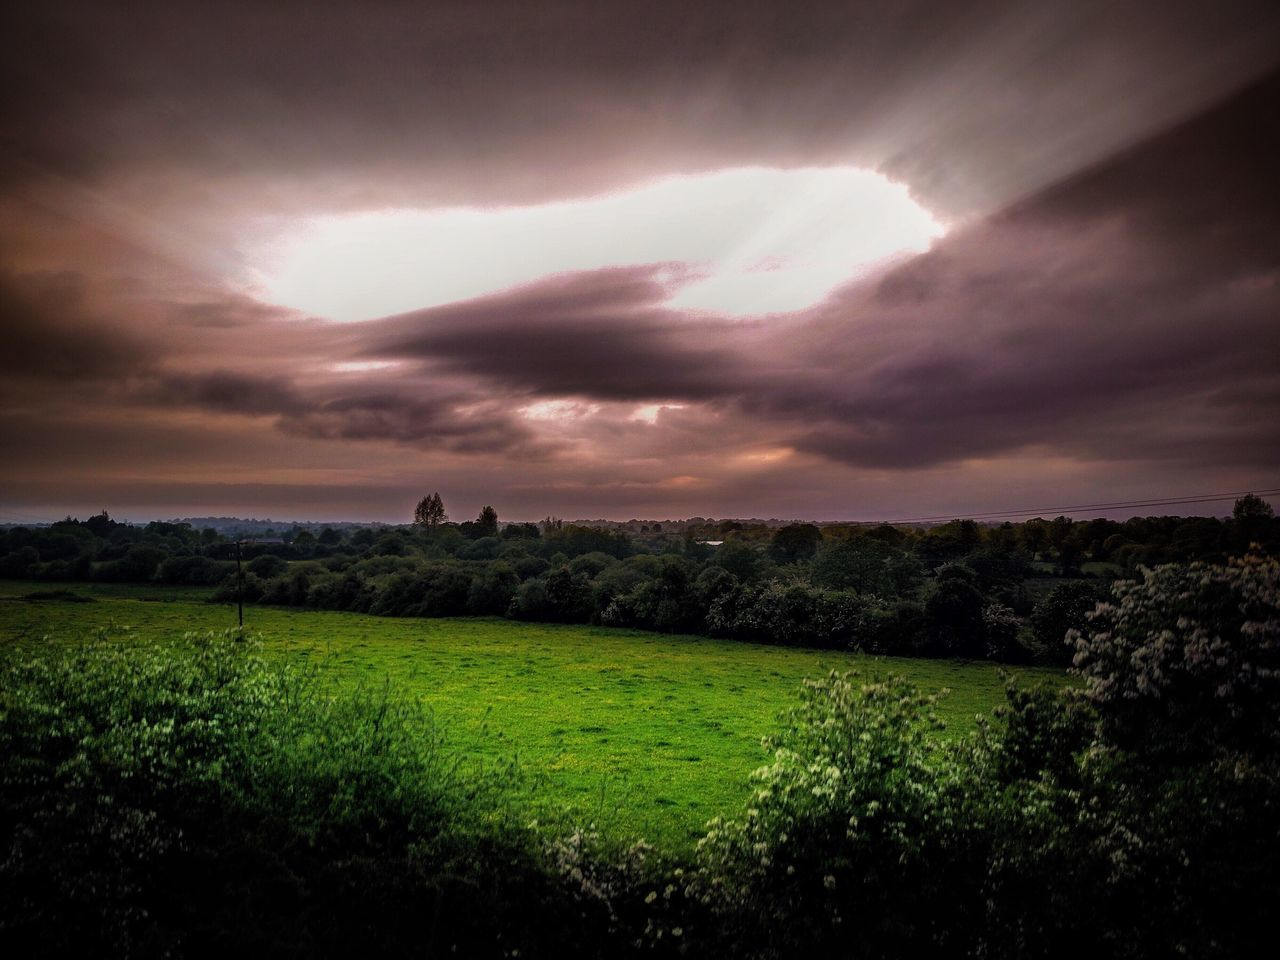 Landscape Sky Nature Field Grass Tranquility Beauty In Nature No People Scenics Sunset Outdoors Architecture Day Ireland